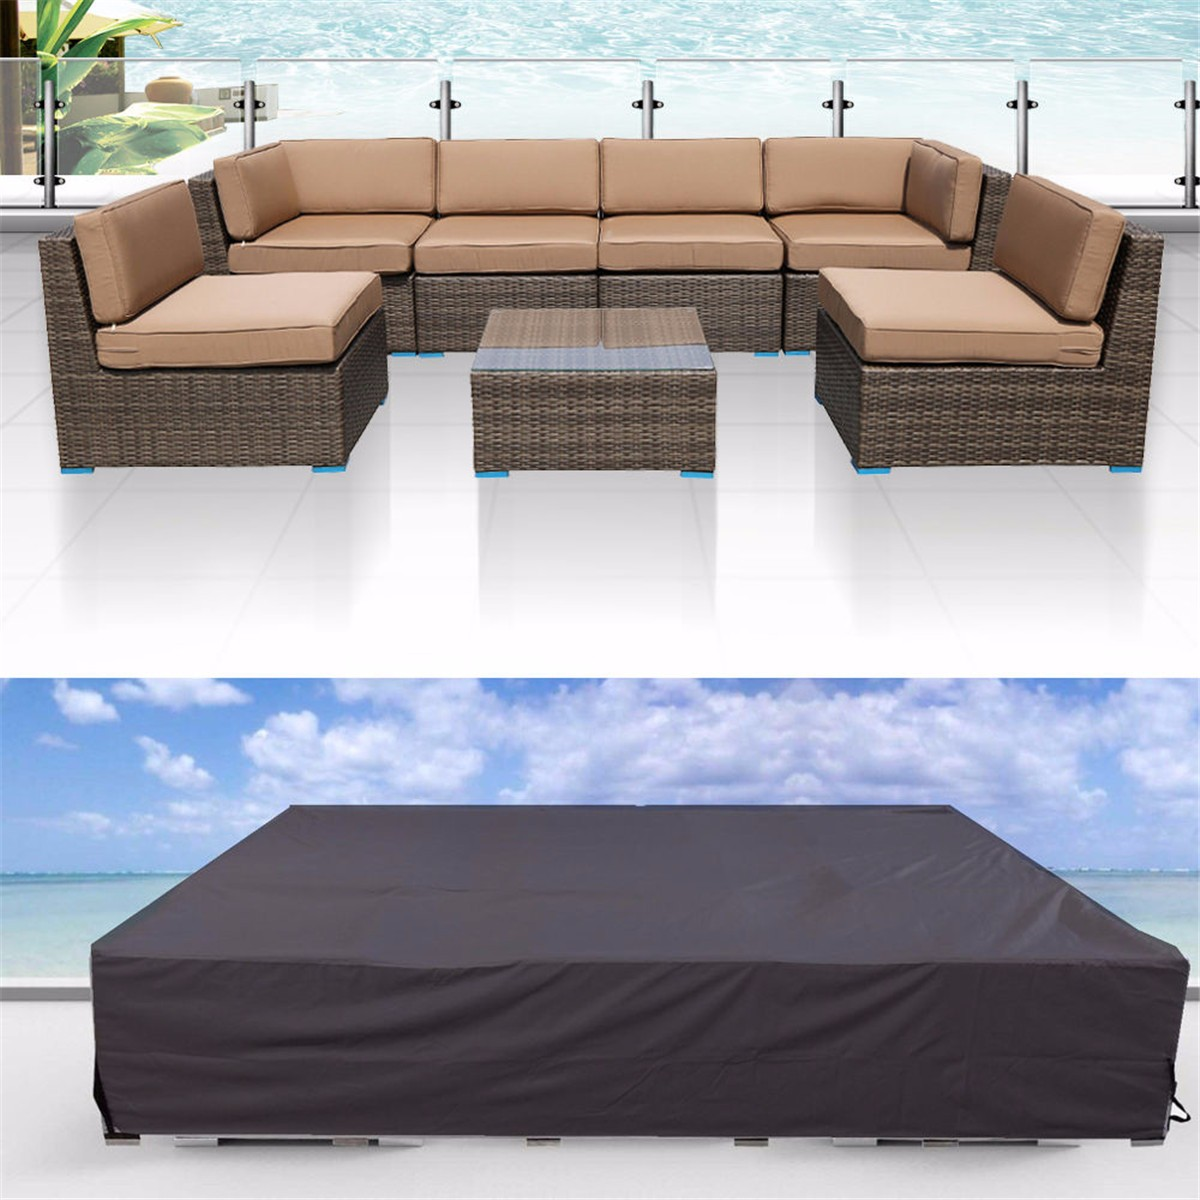 2 size black polyester pvc waterproof sofa couch table cover outdoor garden home furniture decor. Black Bedroom Furniture Sets. Home Design Ideas